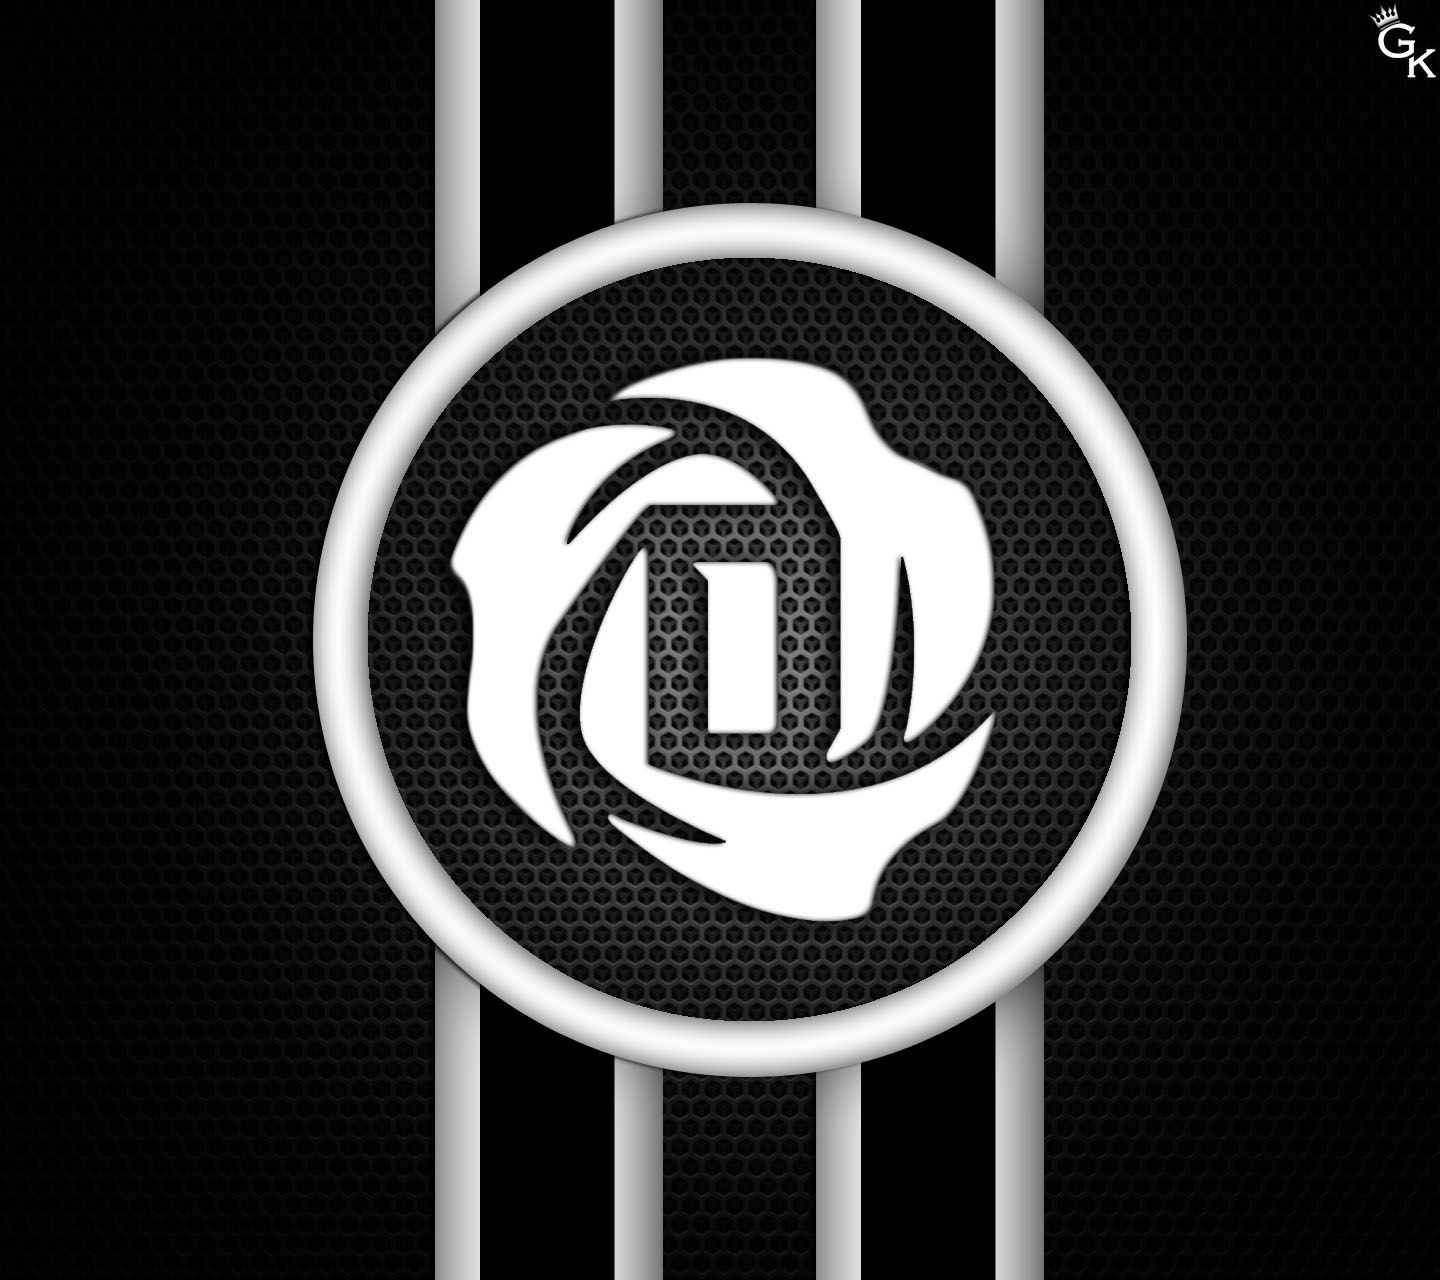 Derrick rose logo wallpaper rose1 pinterest derrick rose and nba search results for d rose logo hd wallpaper adorable wallpapers voltagebd Image collections